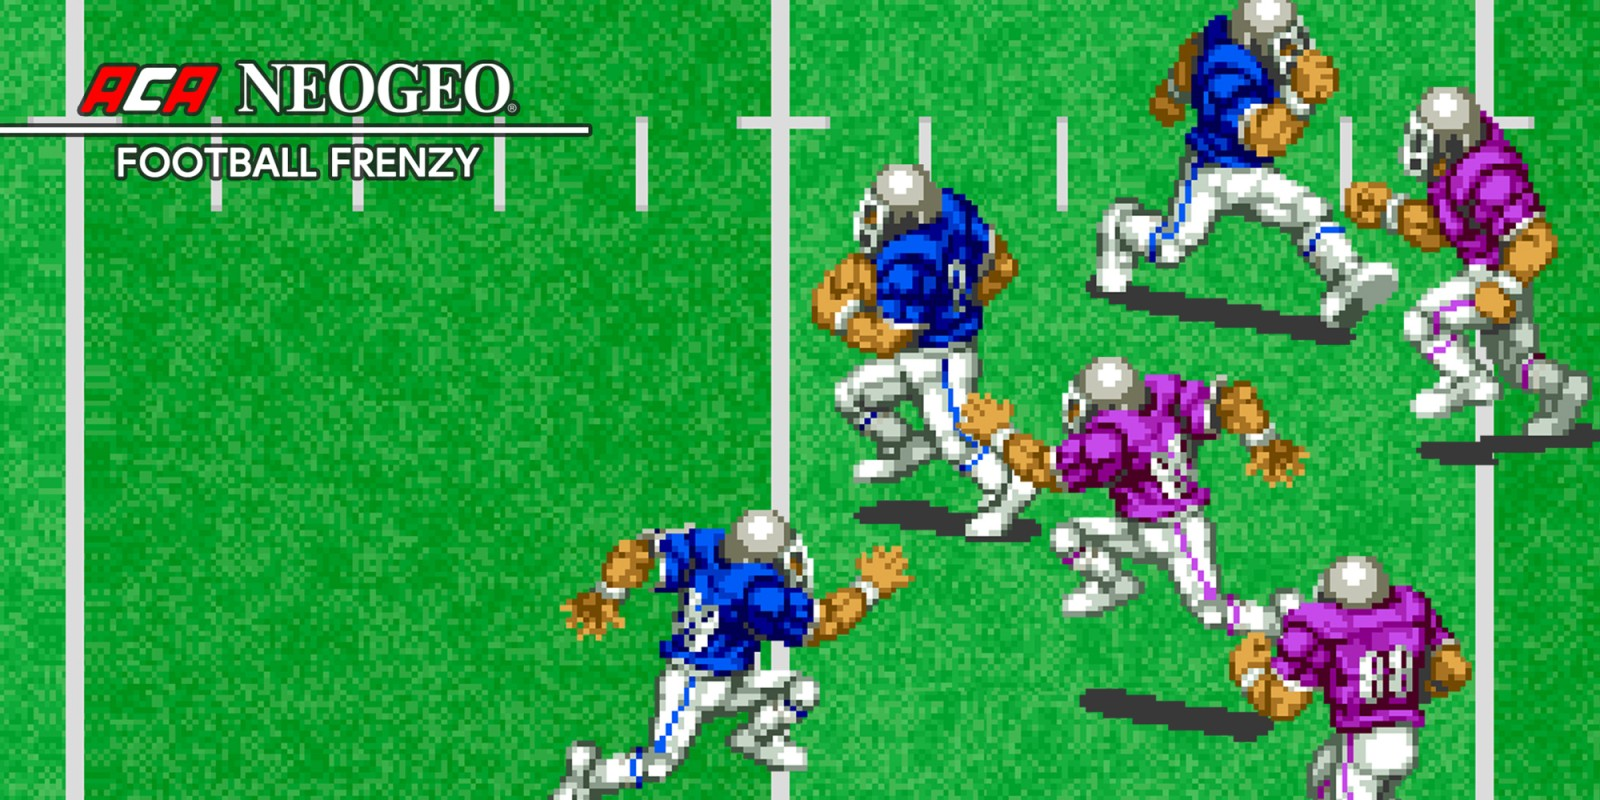 ACA NEOGEO FOOTBALL FRENZY